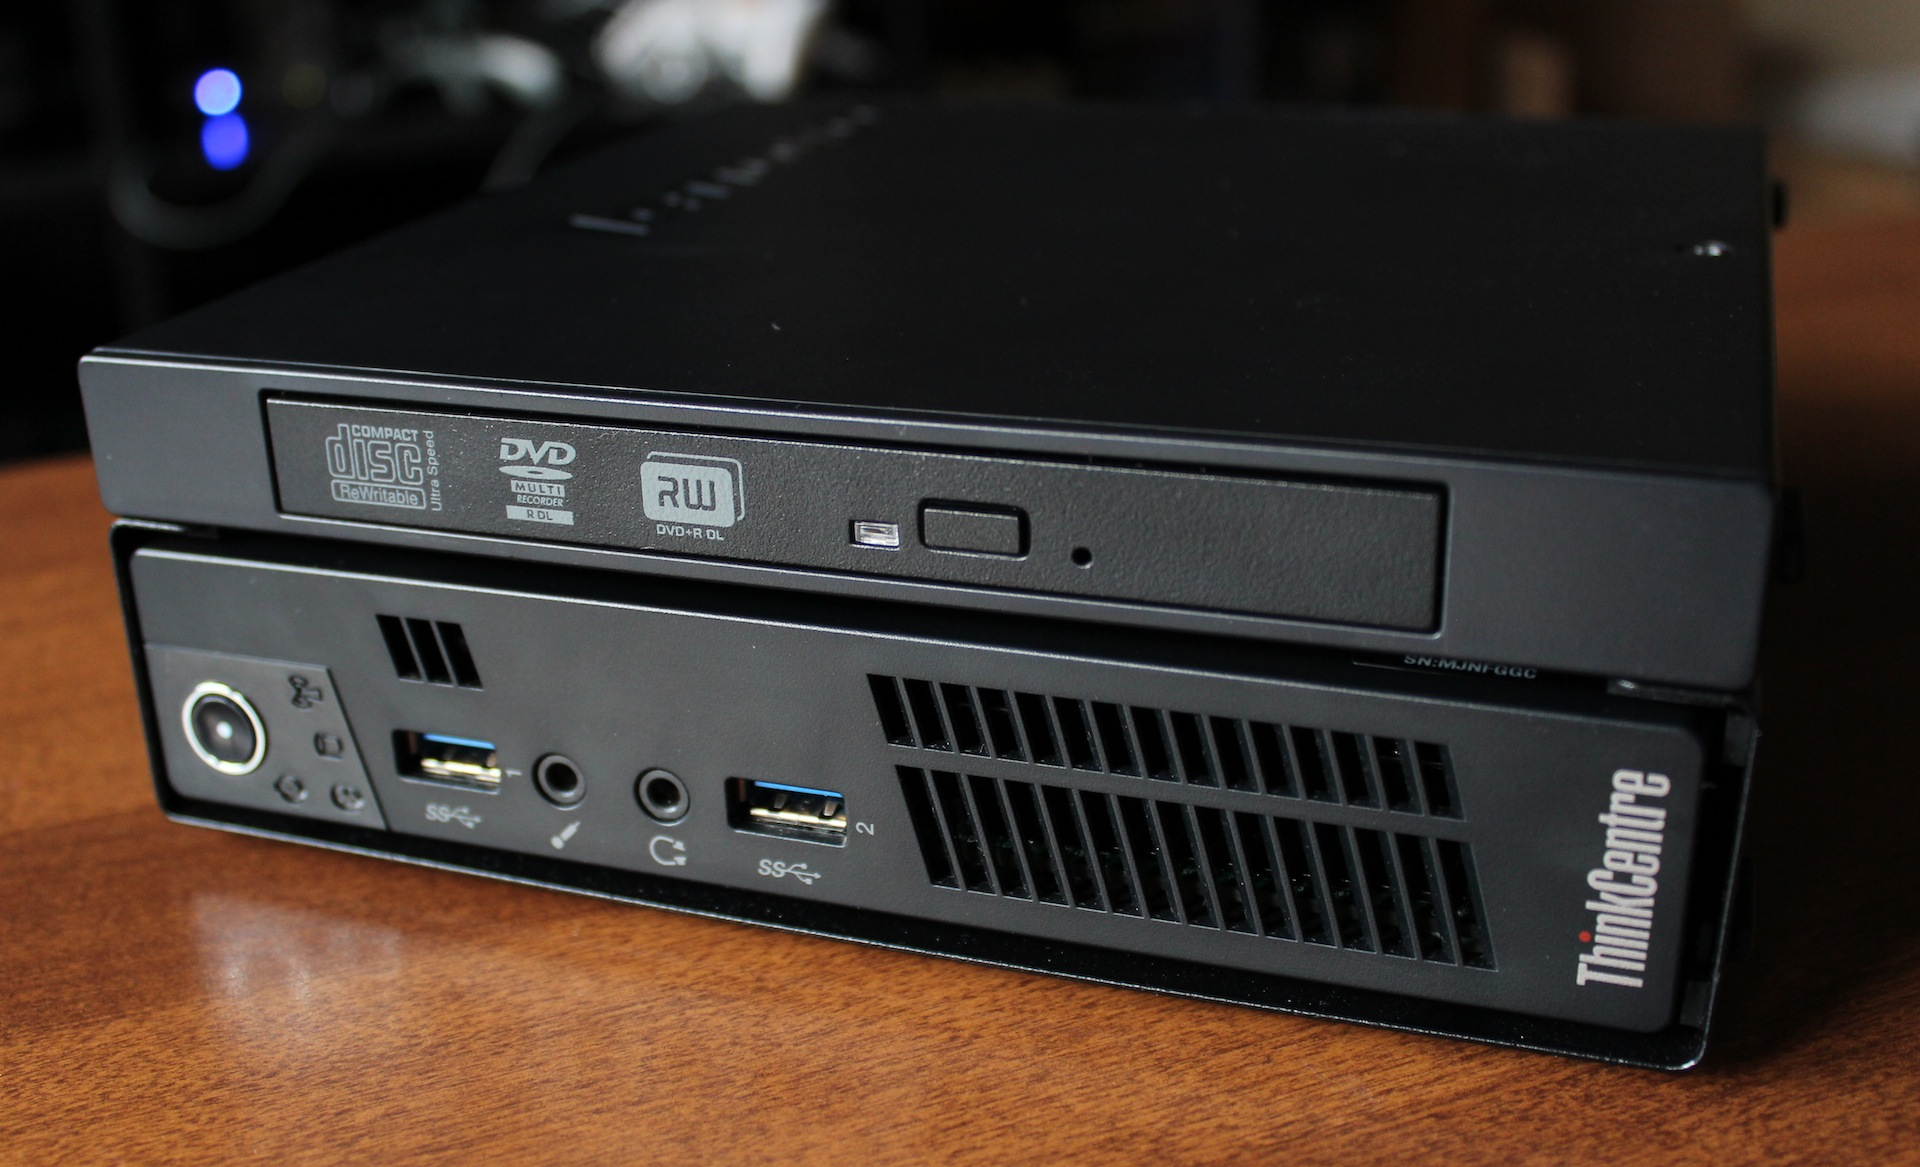 The M92p's optical drive comes in its own frame, which the computer itself slides into. It adds some height and weight to the package but should soothe those who are afraid of the optical drive's demise.